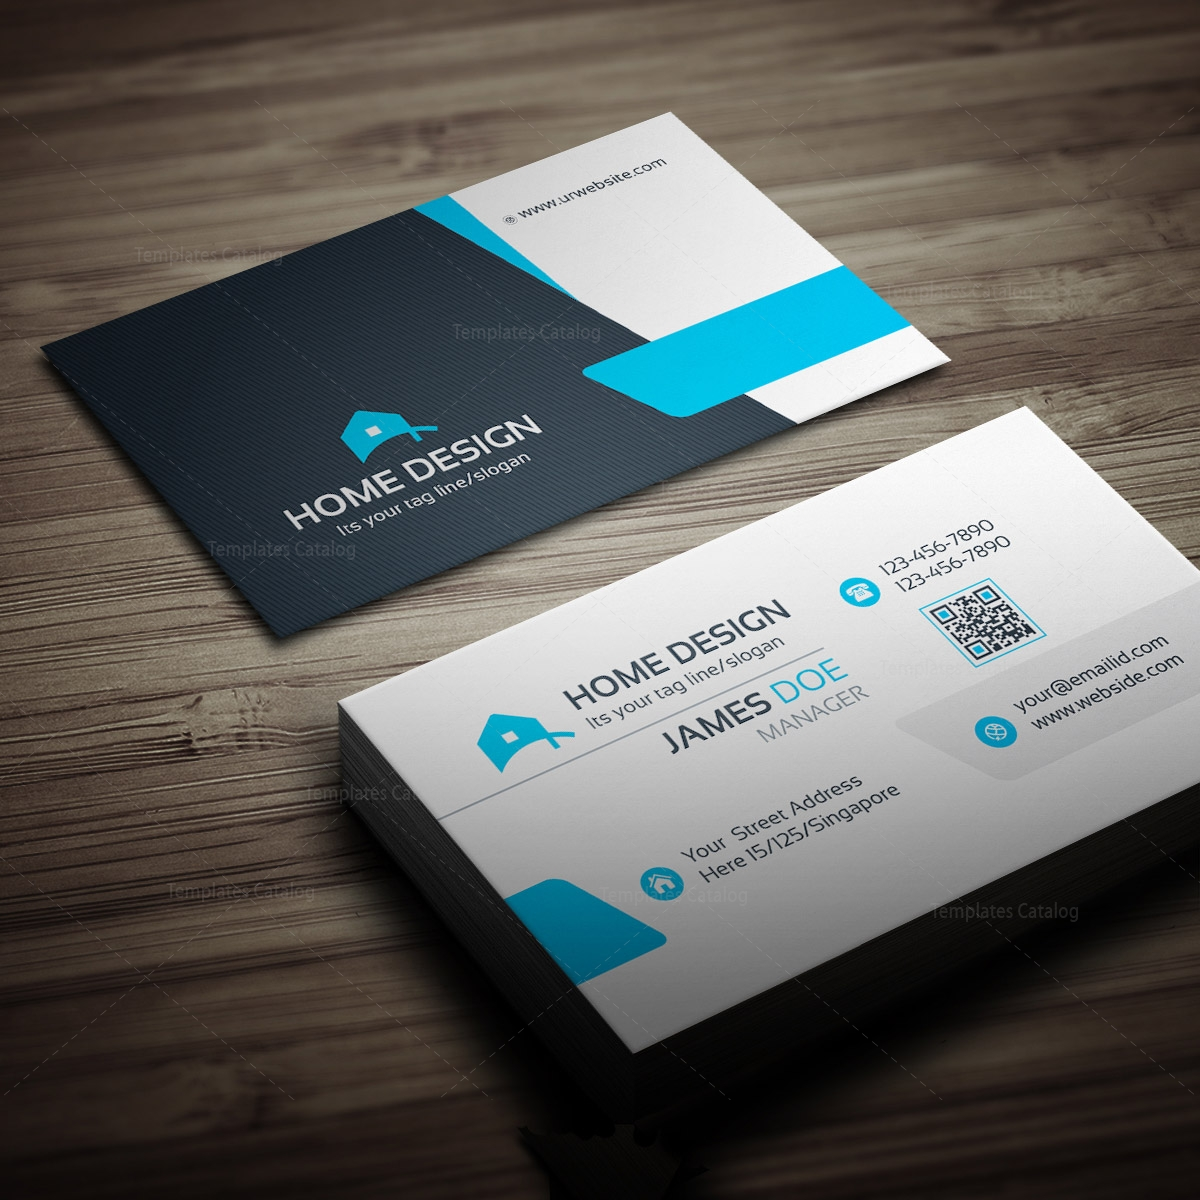 Home design business card template 000258 template catalog for Photo business card template